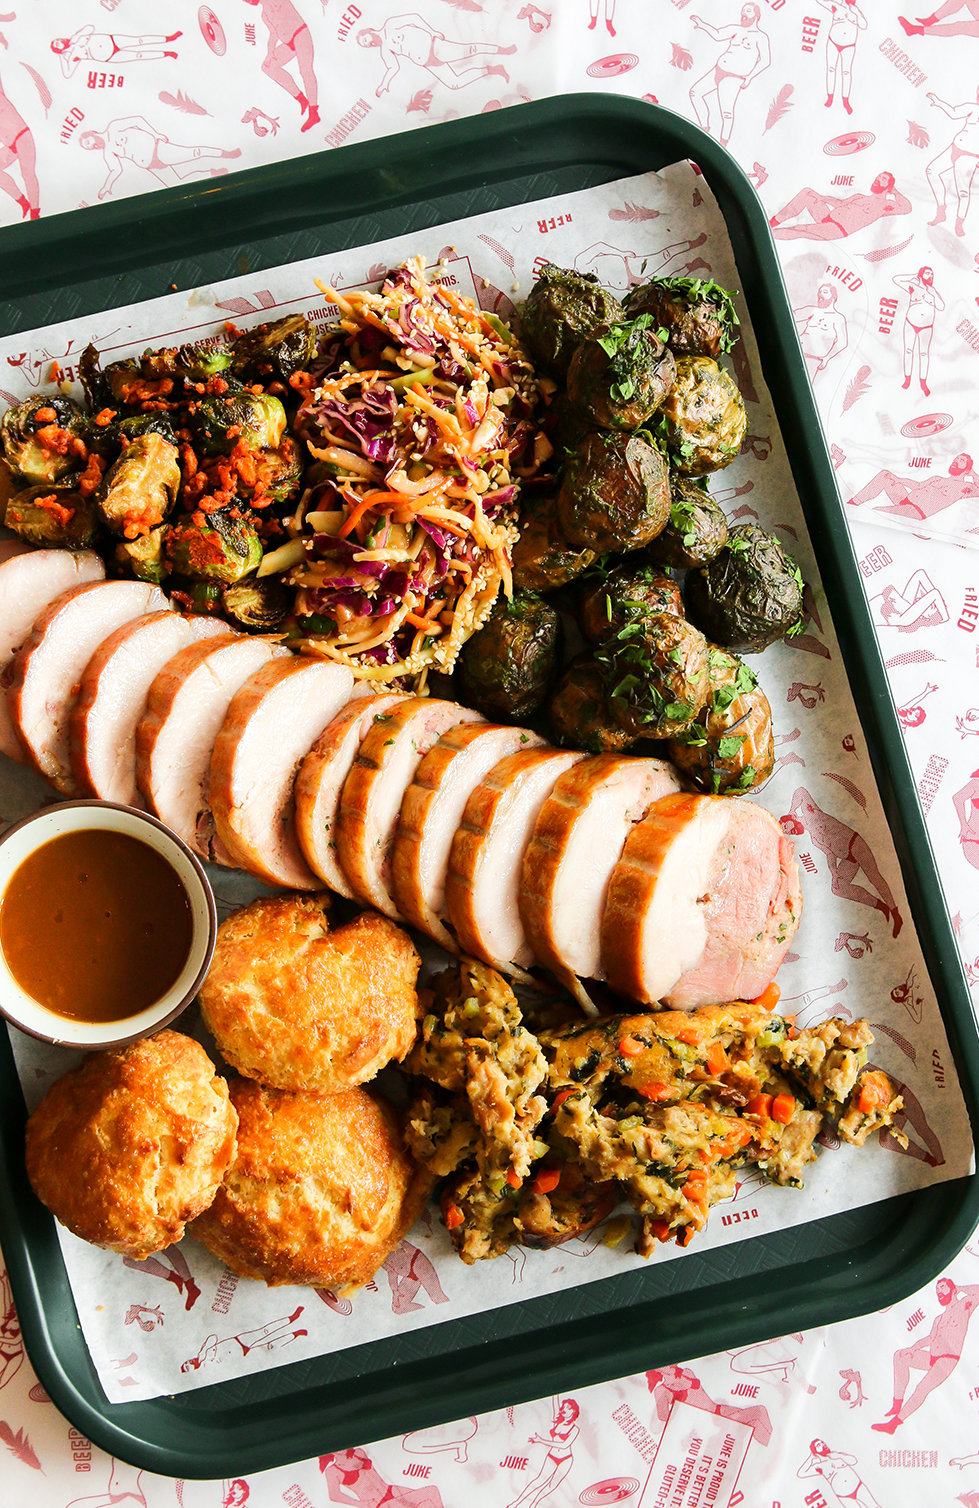 JUKE FEATURES TURDUCKEN FEAST, HOSTS THIRD-ANNUAL 'CLUCK YOUR RESOLUTIONS' BRUNCH ON NEW YEAR'S DAY - November 21, 2018Juke Fried Chicken will be a crowd pleaser in more ways than one this Christmas season by offering a festive Holiday Turducken Feast perfect for parties and gatherings, and by hosting its third-annual 'Cluck Your Resolutions' brunch to ring in 2019 on Tuesday, January 1.Available exclusively for pickup on Sunday, December 23, each Juke Holiday Turducken Feast package feeds six to eight people and includes pre-sliced turducken with stuffing and gravy, large sides of fried Brussels sprouts and herb-roasted potatoes, cranberry sauce, honey roasted squash, and country biscuits with whipped schmaltz. In true Juke fashion, all items except the country biscuits are gluten free.